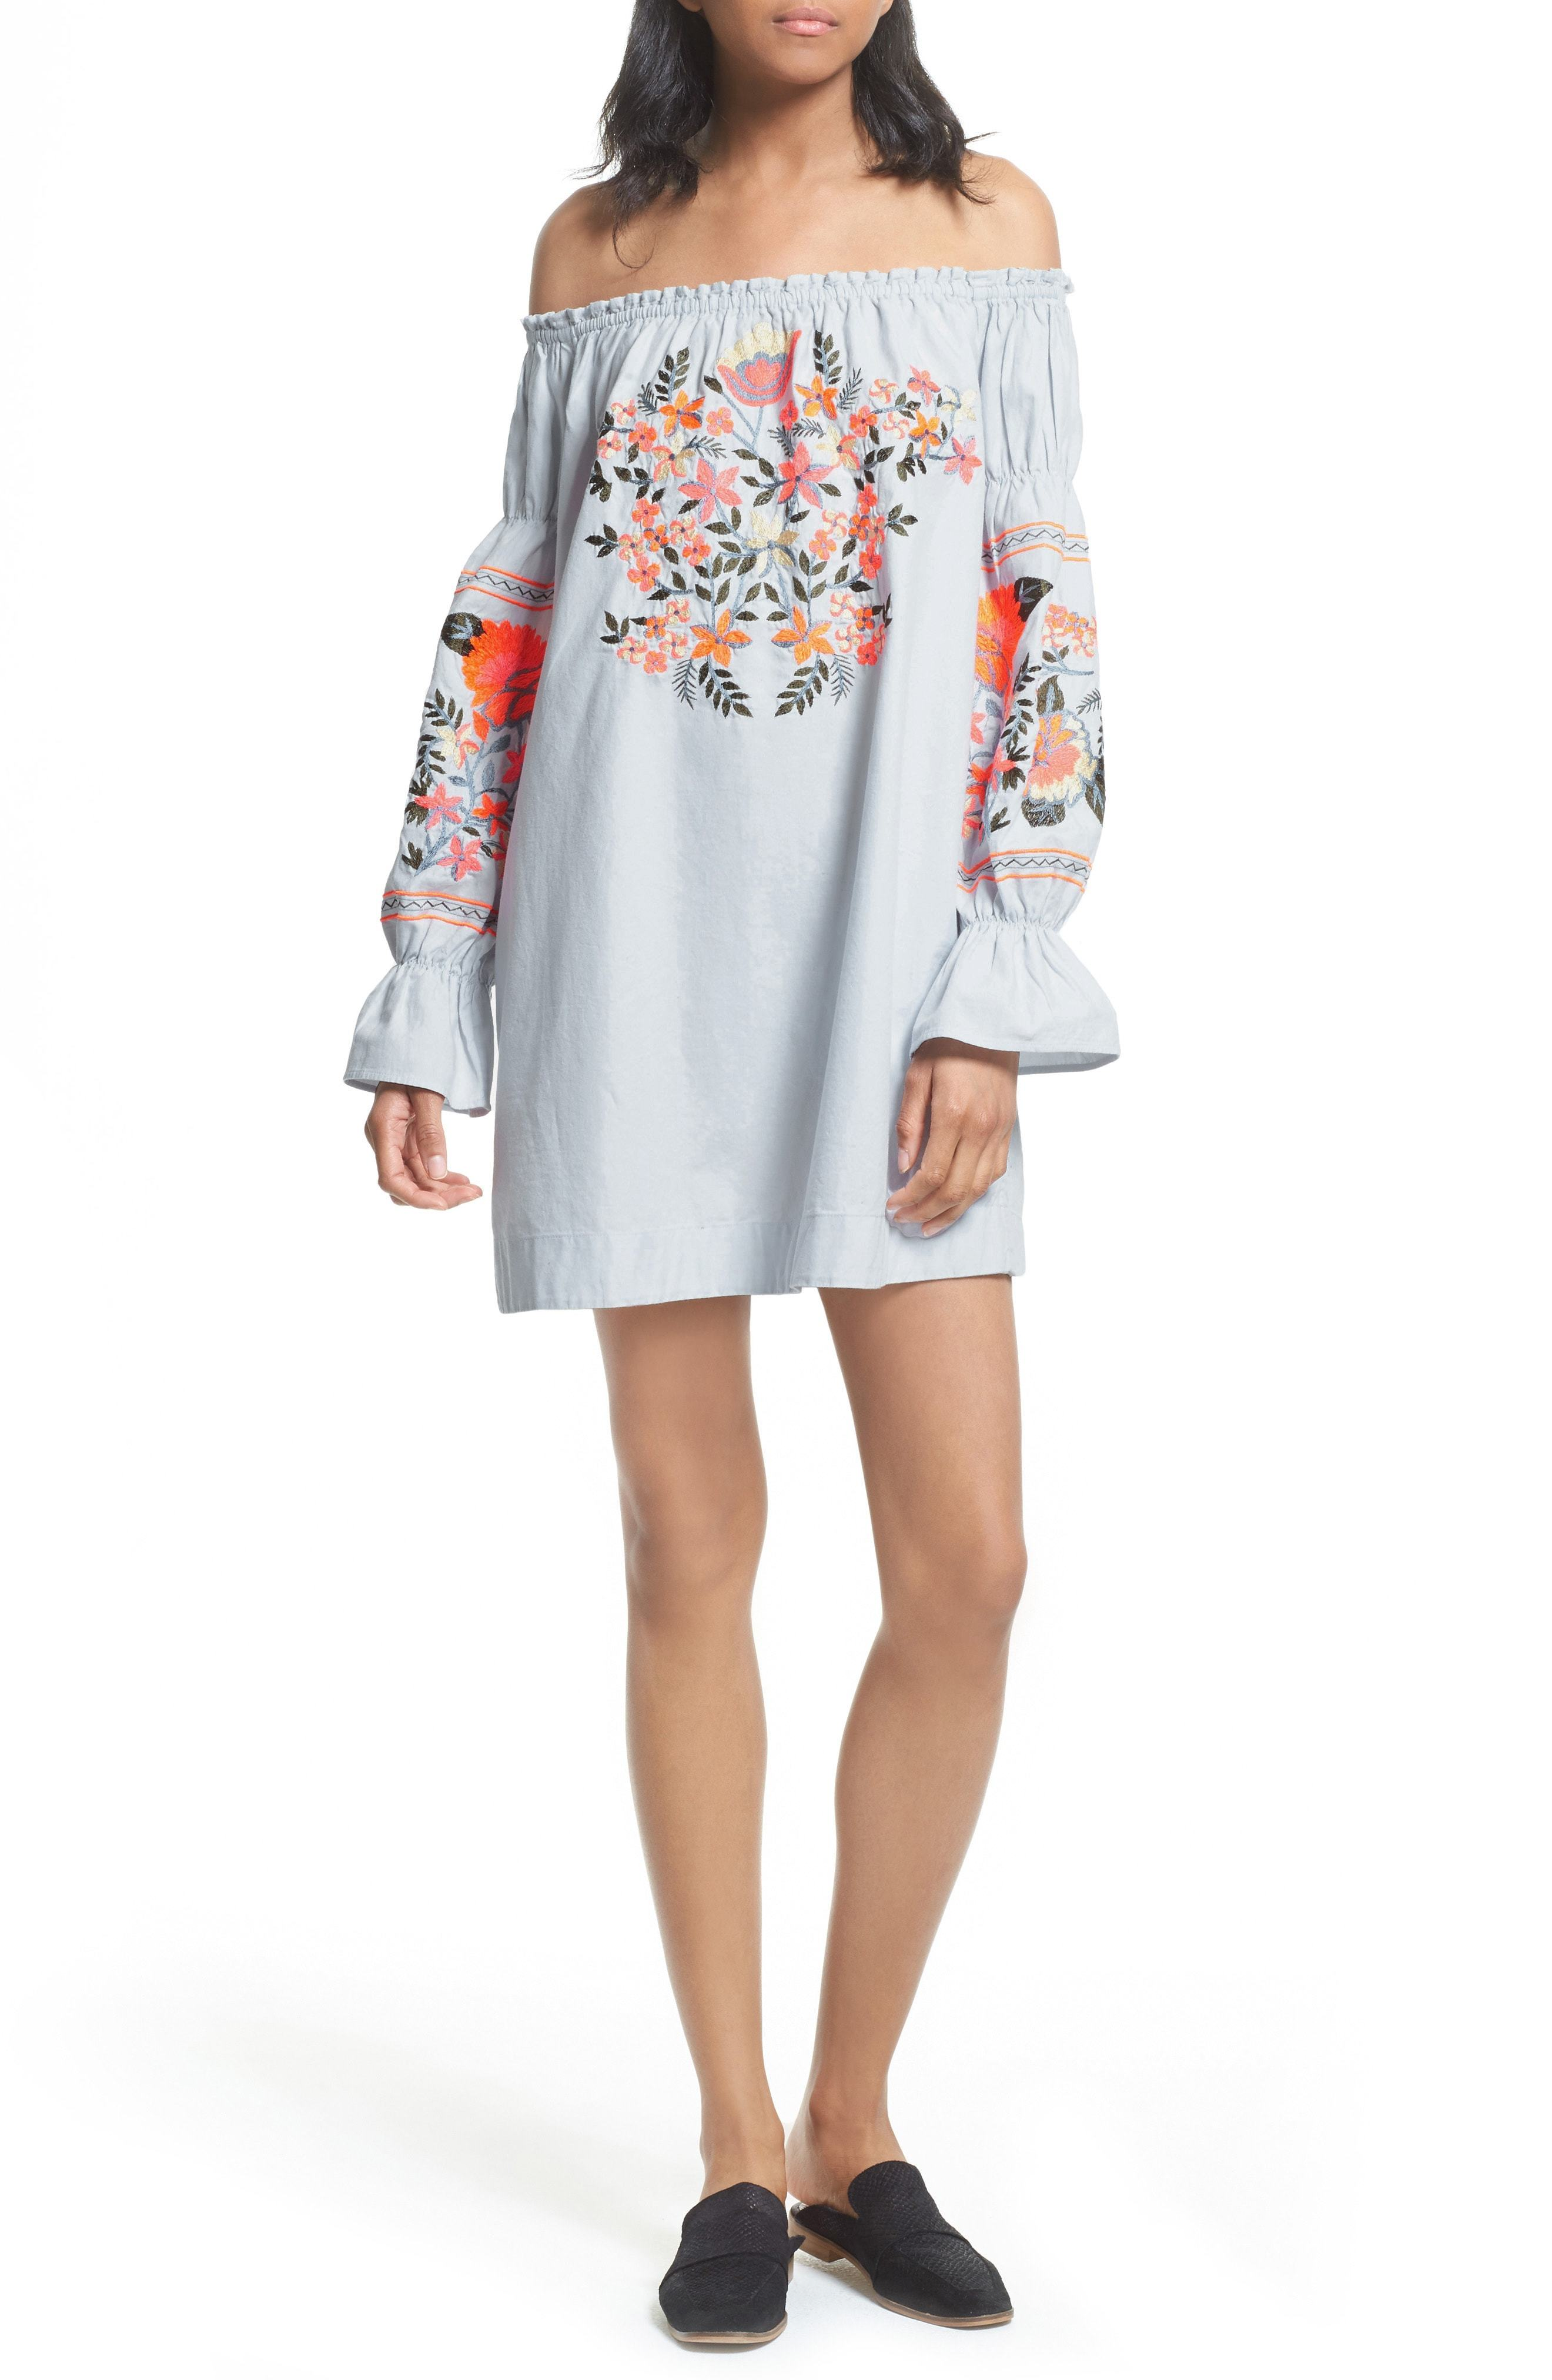 4e11207ea4460 ... Light Blue Embroidered Off Shoulder Dresses Free People Fleur Du Jour  Shift Dress